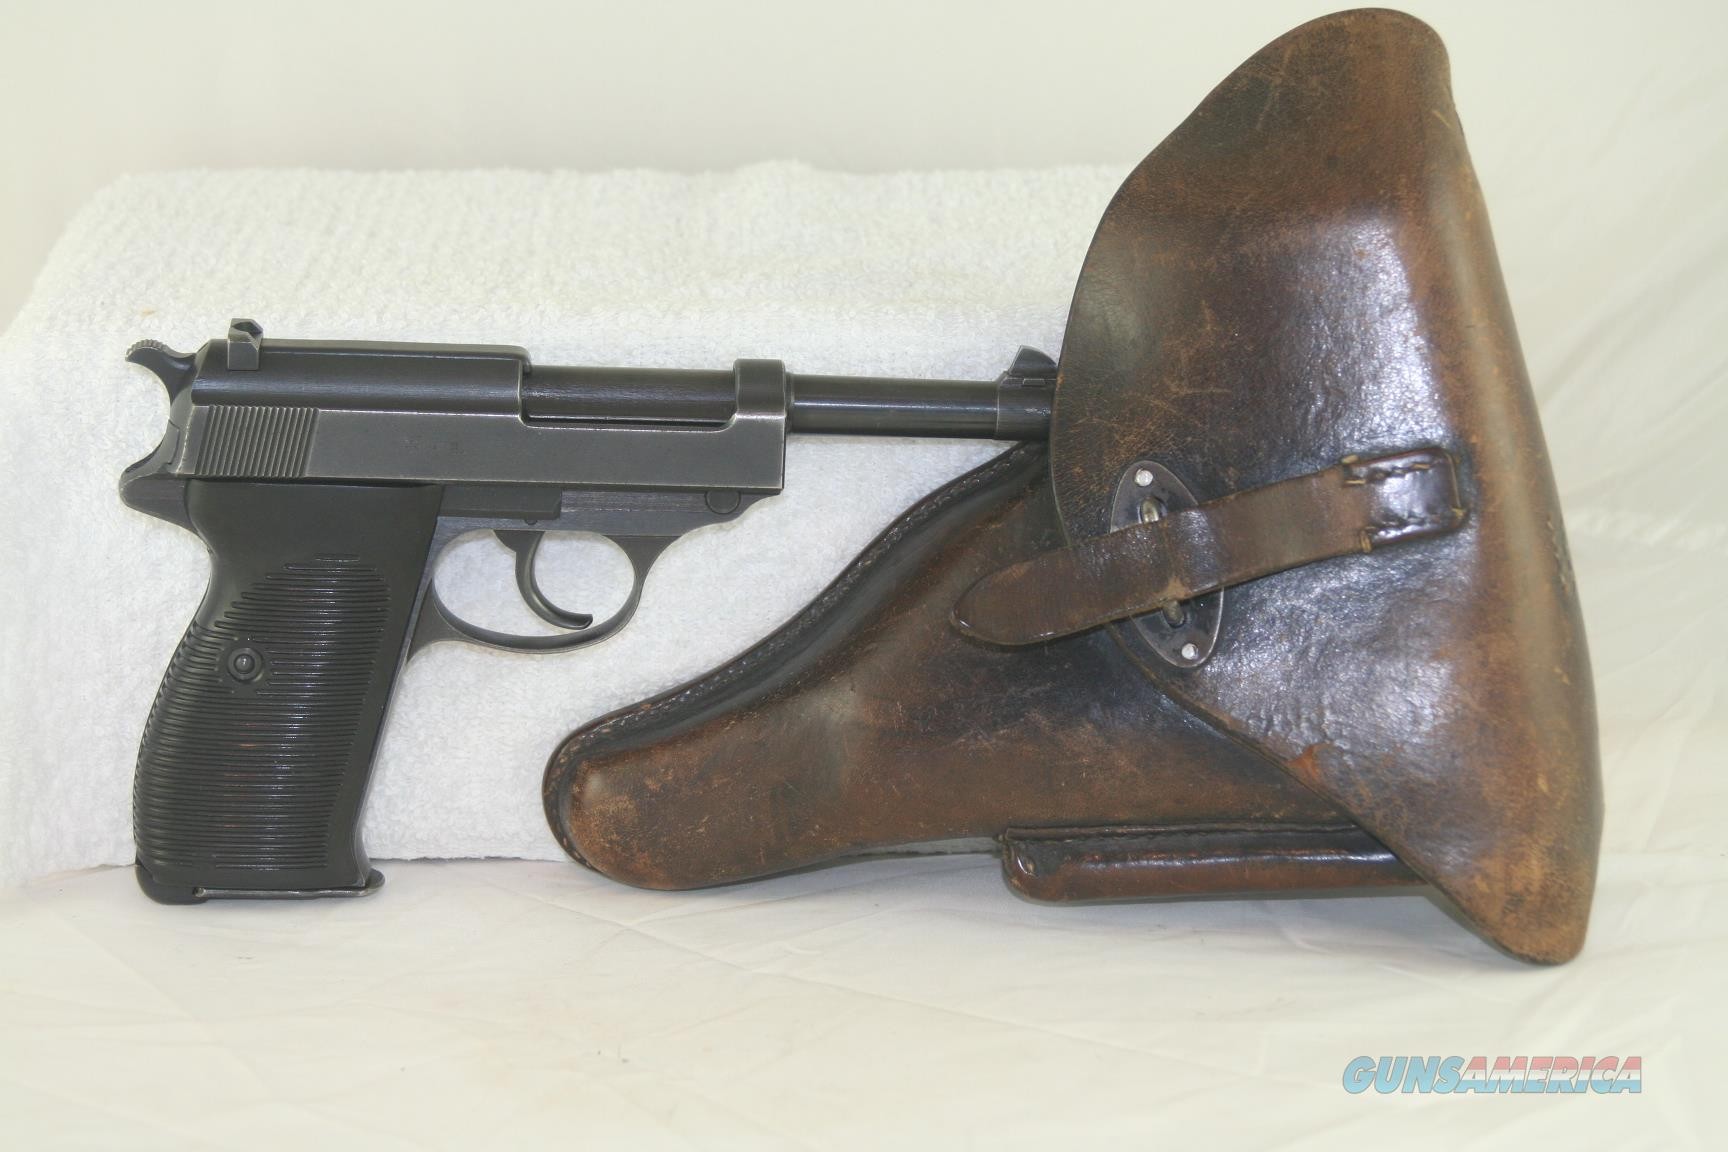 Walther P 38 made by Mauser in 1943, 9 M/M, 90% original finish. All matching numbers. Slide marked ac 43  Guns > Pistols > Walther Pistols > Pre-1945 > P-38